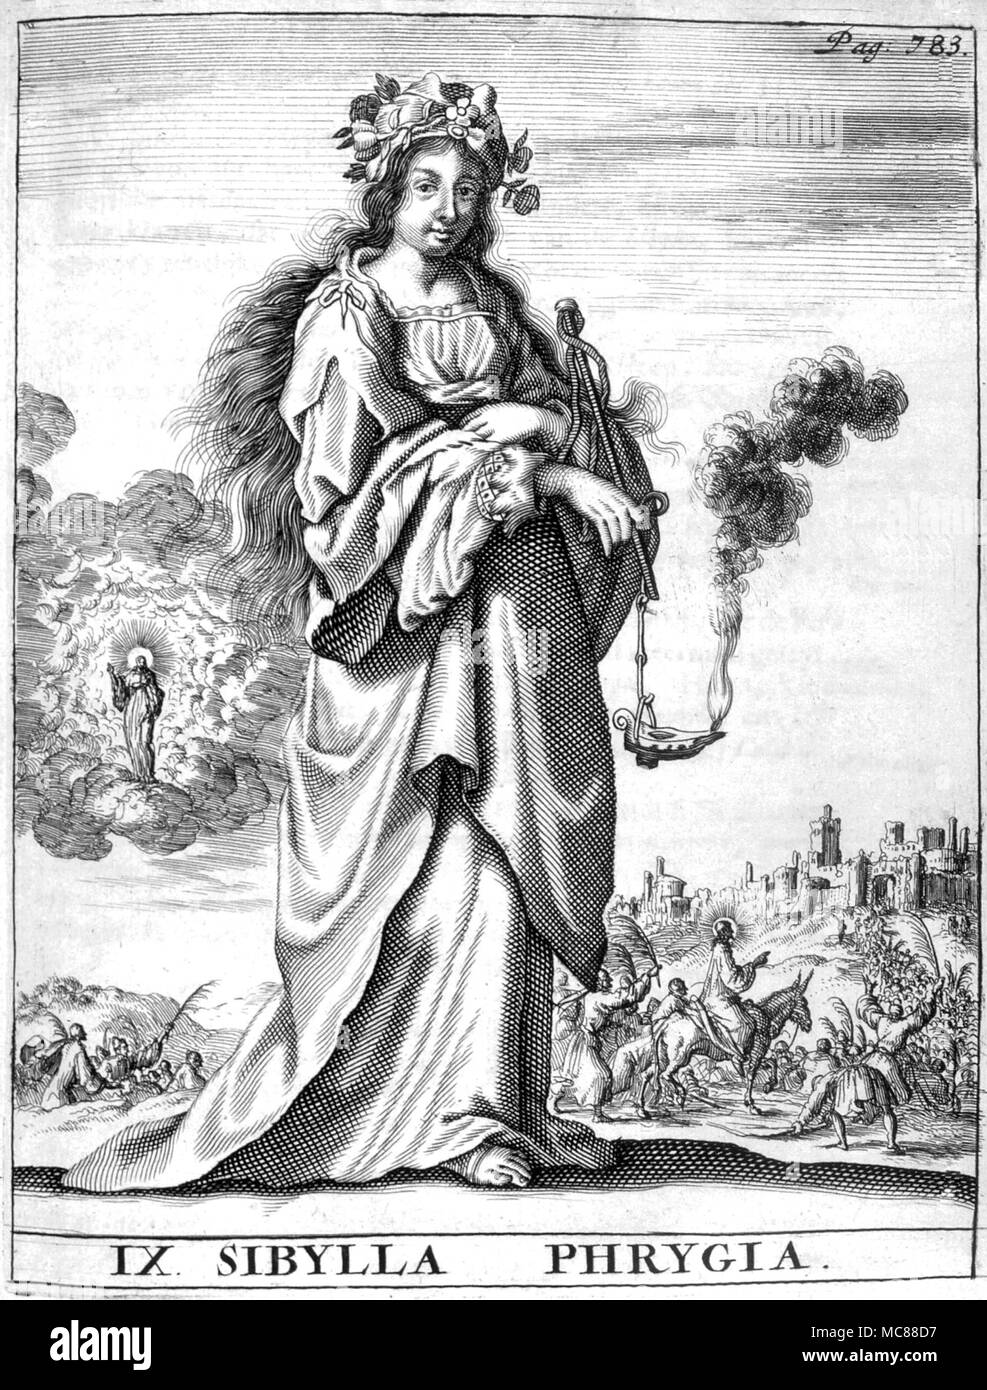 Spiegel Amsterdam Predictions And Prophecy The Sibyl Of Phrygia Form The 1685